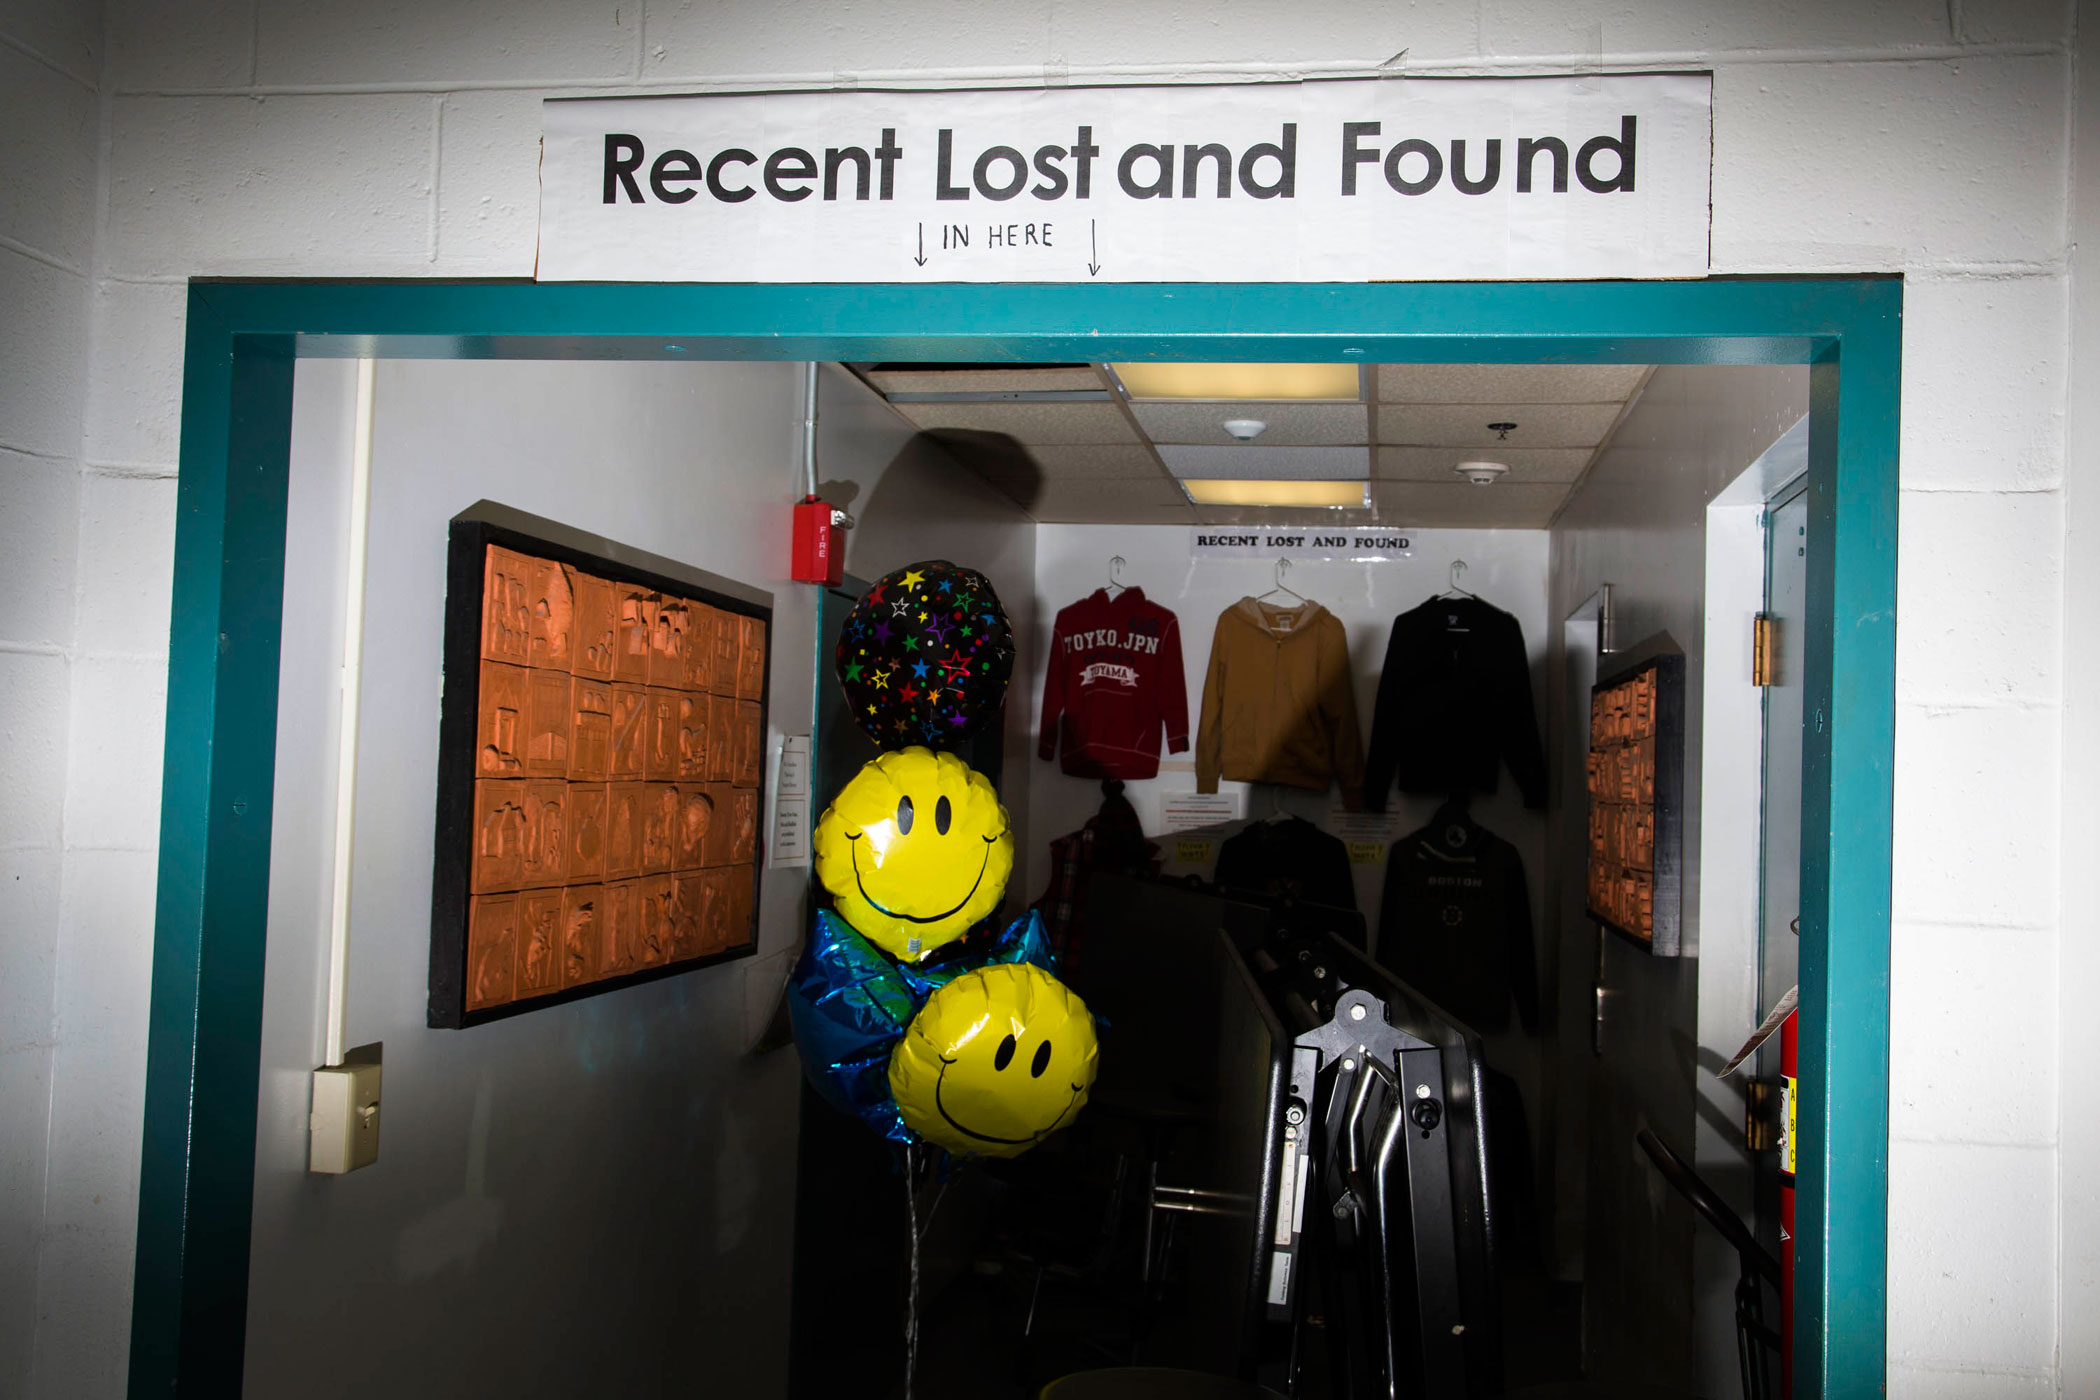 A lost and found at Hampton Academy, where New Jersey Gov. Chris Christie held a campaign event on Feb. 7, 2016, in Hampton, N.H.